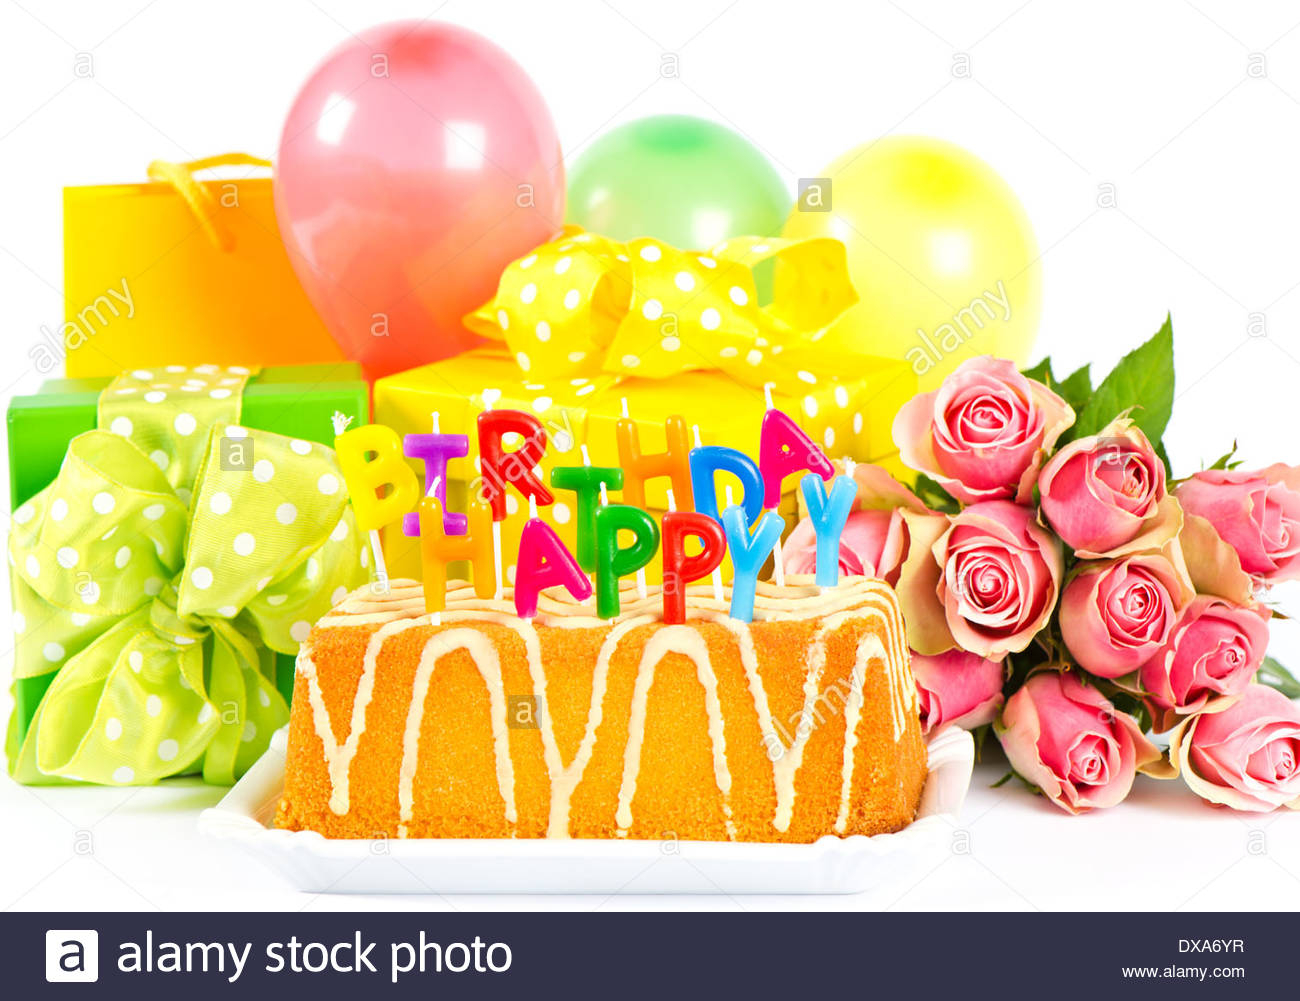 Happy Birthday Cake And Flowers Images Happy Birthday Party Decoration With Roses Flowers Cake Balloons